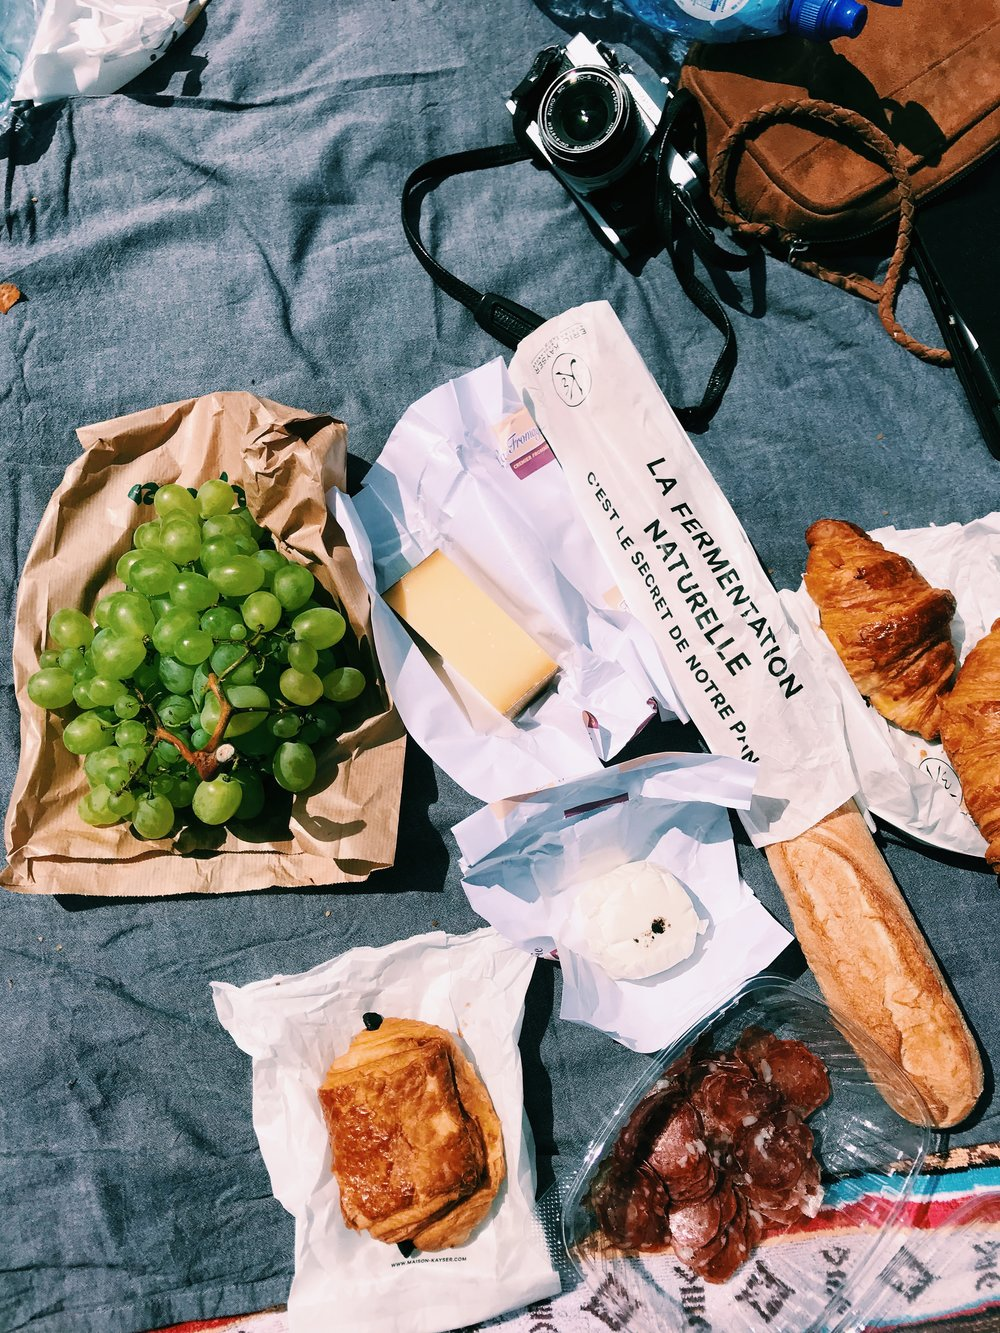 Technically the grapes make this picnic healthy, right?